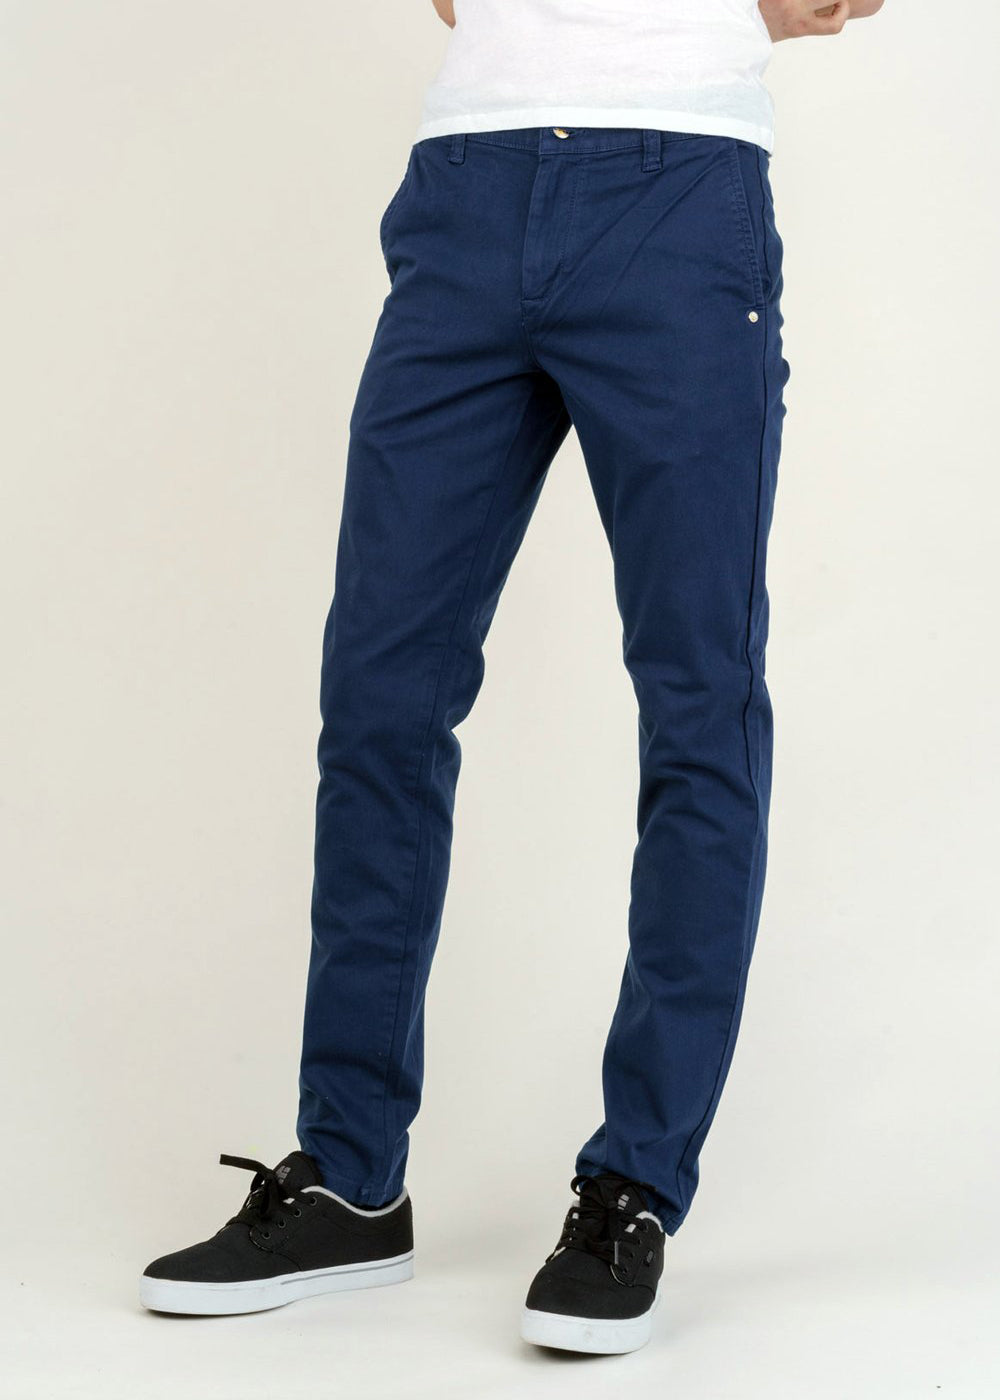 Men's Chinos in Night Sea-Jeans-Sancho's Dress